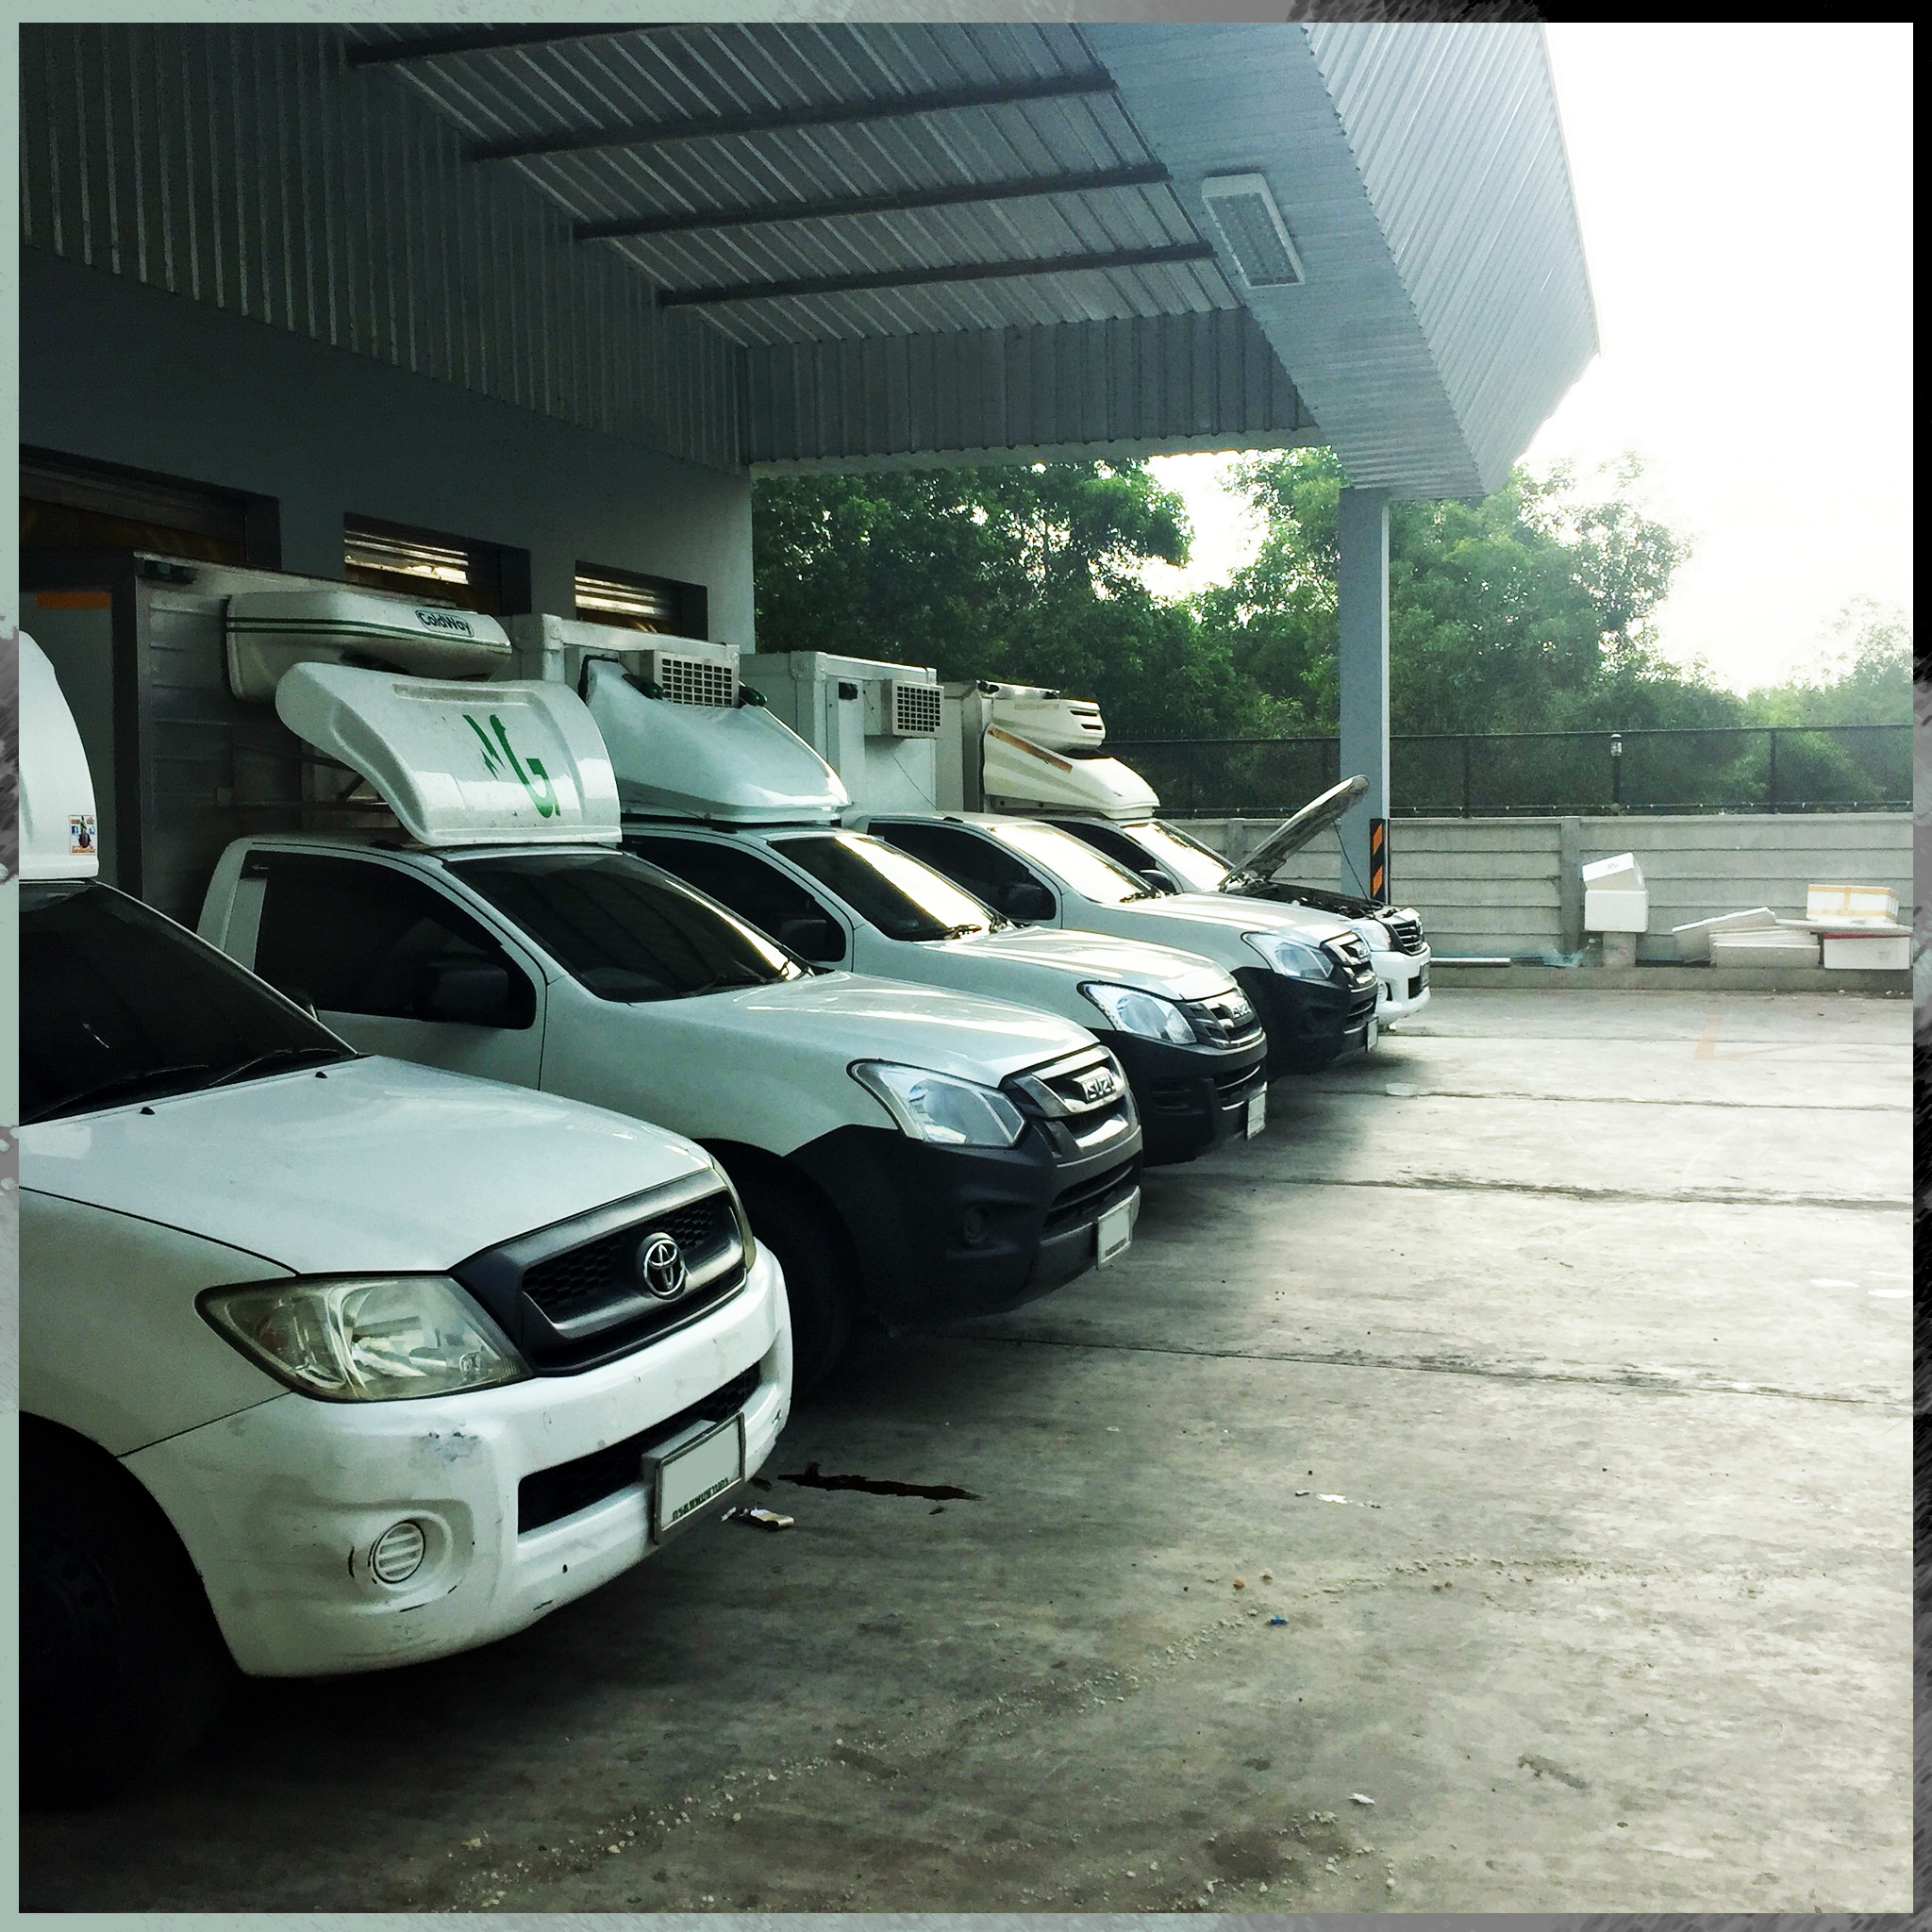 The Transportation of Simiran Food Products